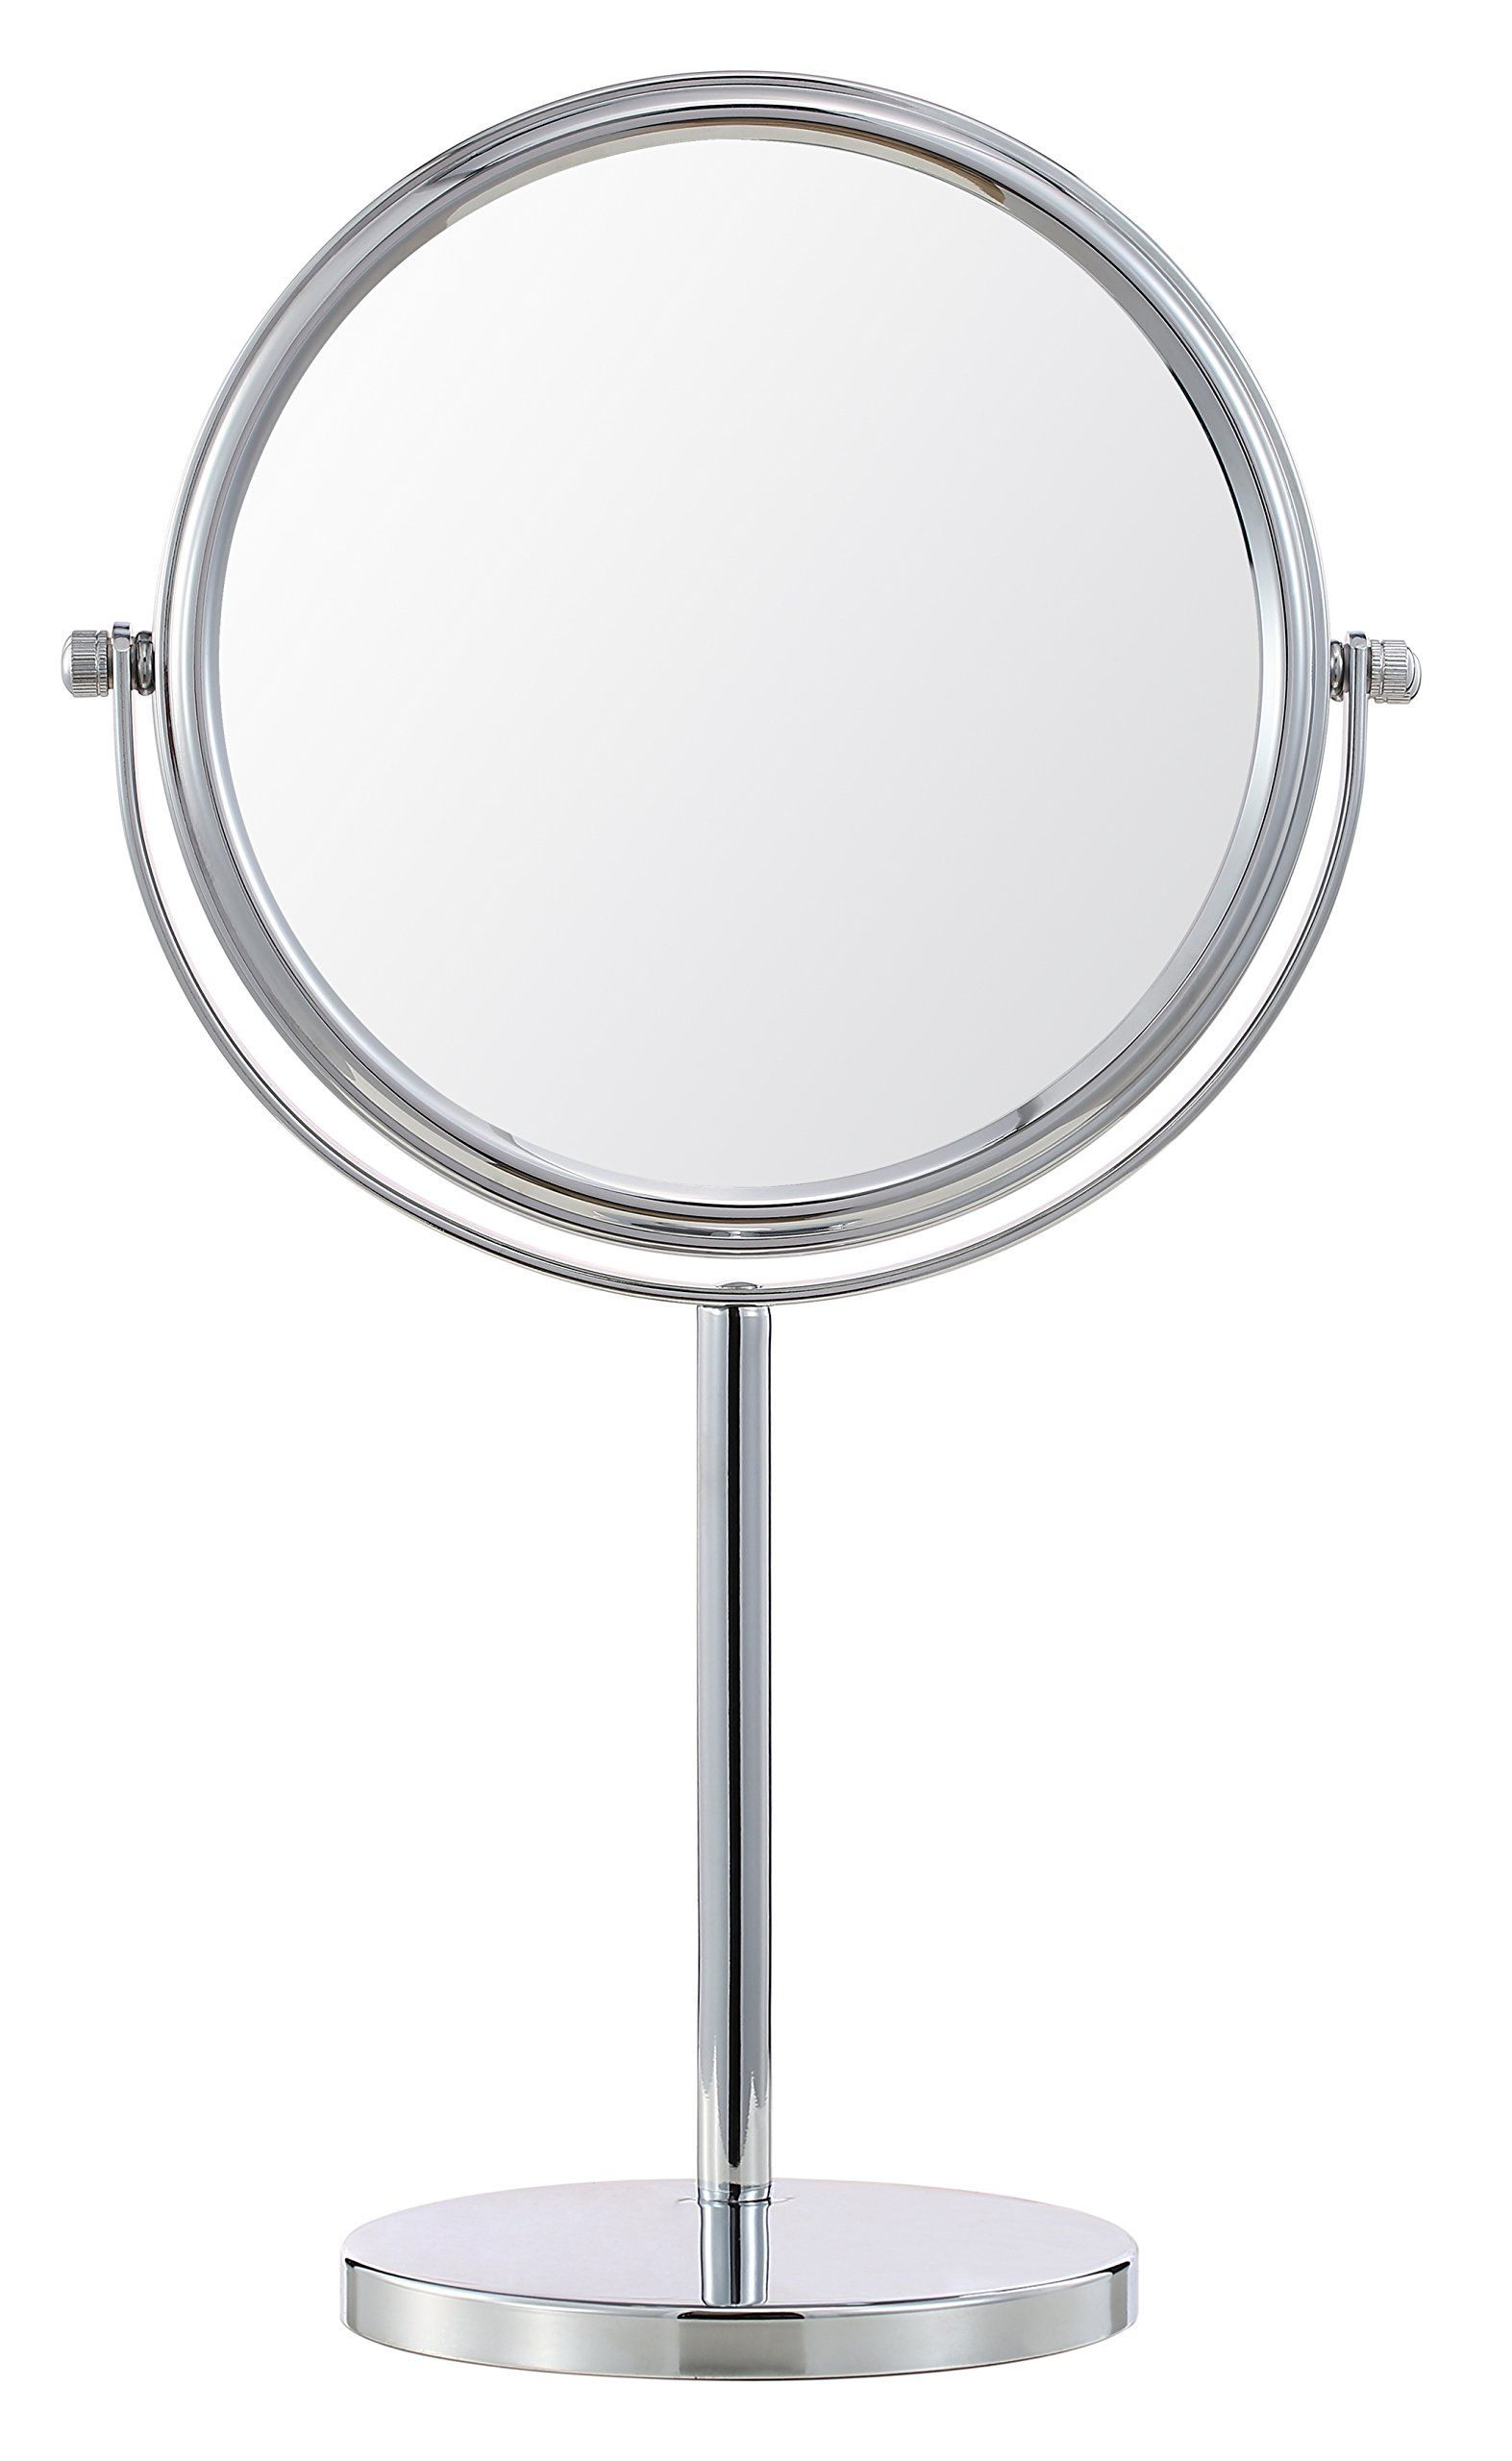 Etonnant Cerdeco 8 Inch TwoSided Makeup Mirror With 5x Magnification Vanity Mirror  Tabletop Mirror Chrome Finished *